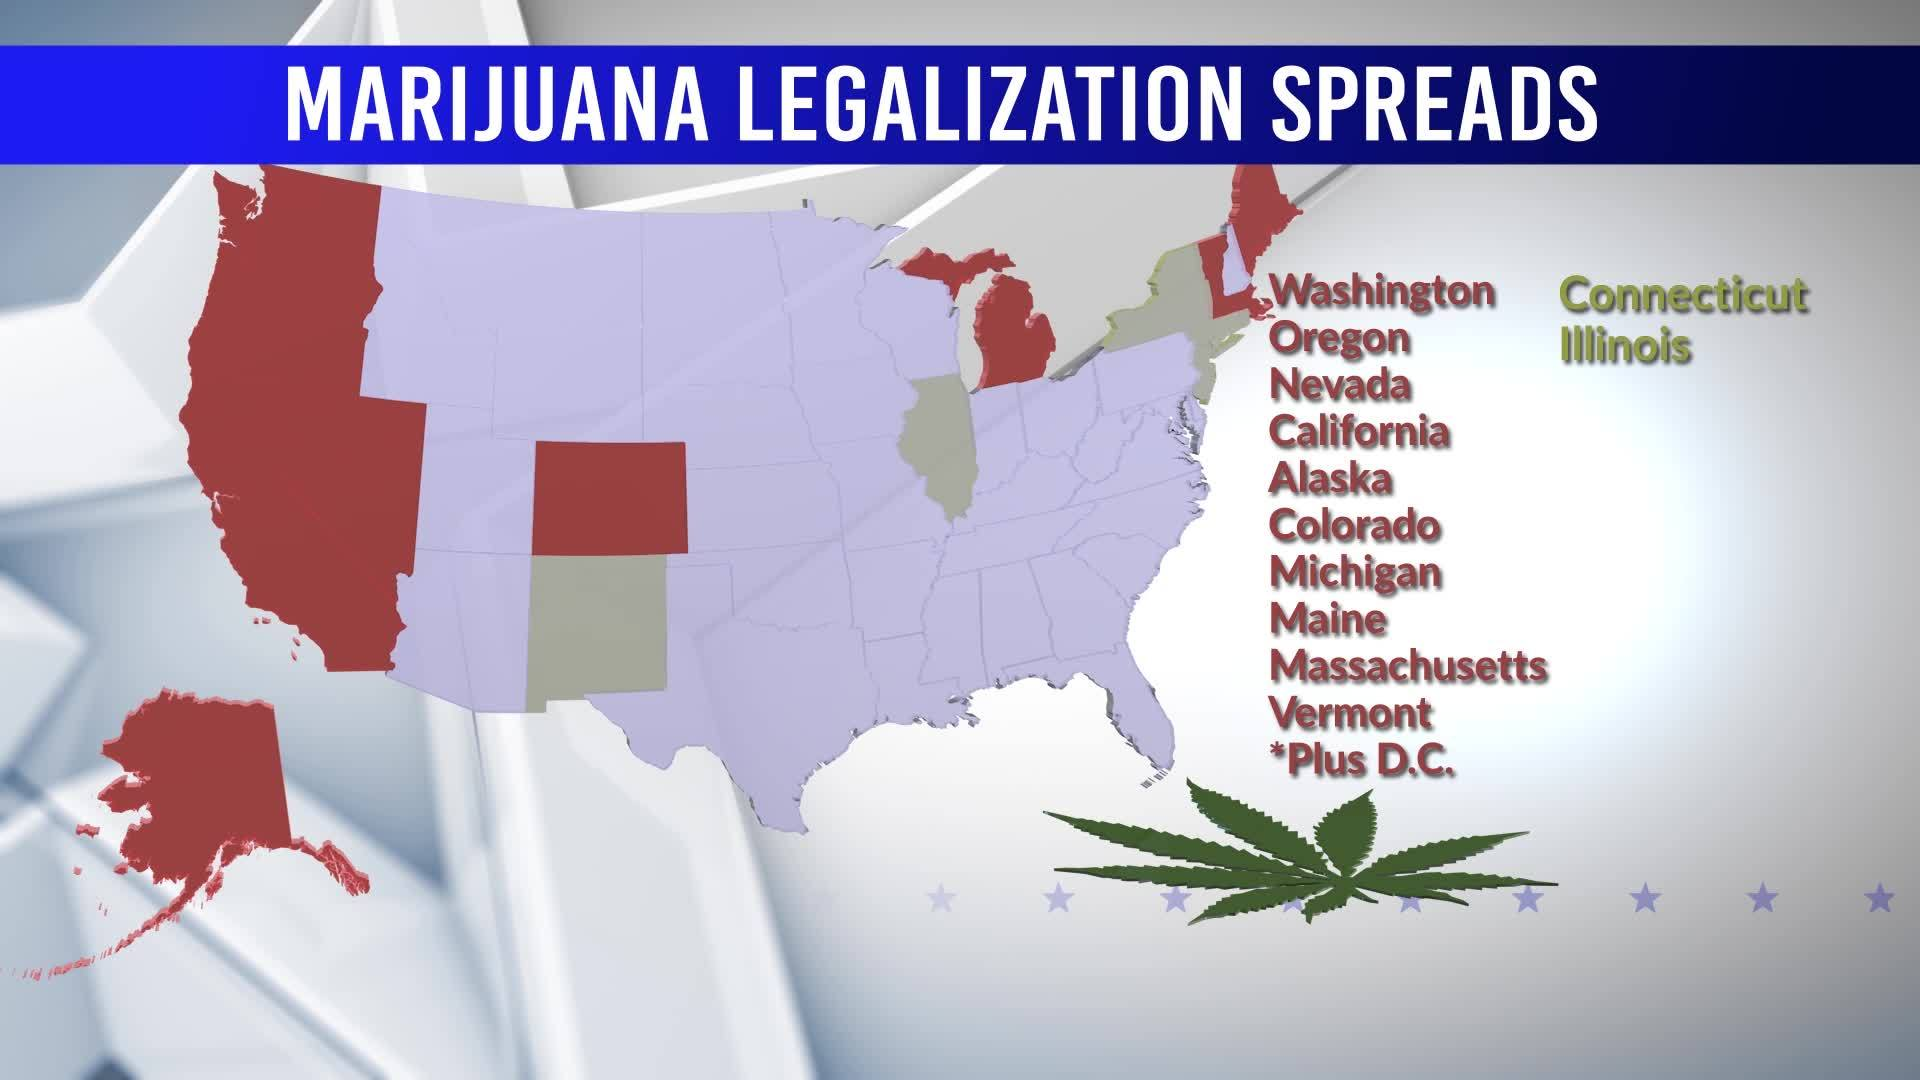 Changes_in_store_for_US_marijuana_policy_8_20190207150633-118809306